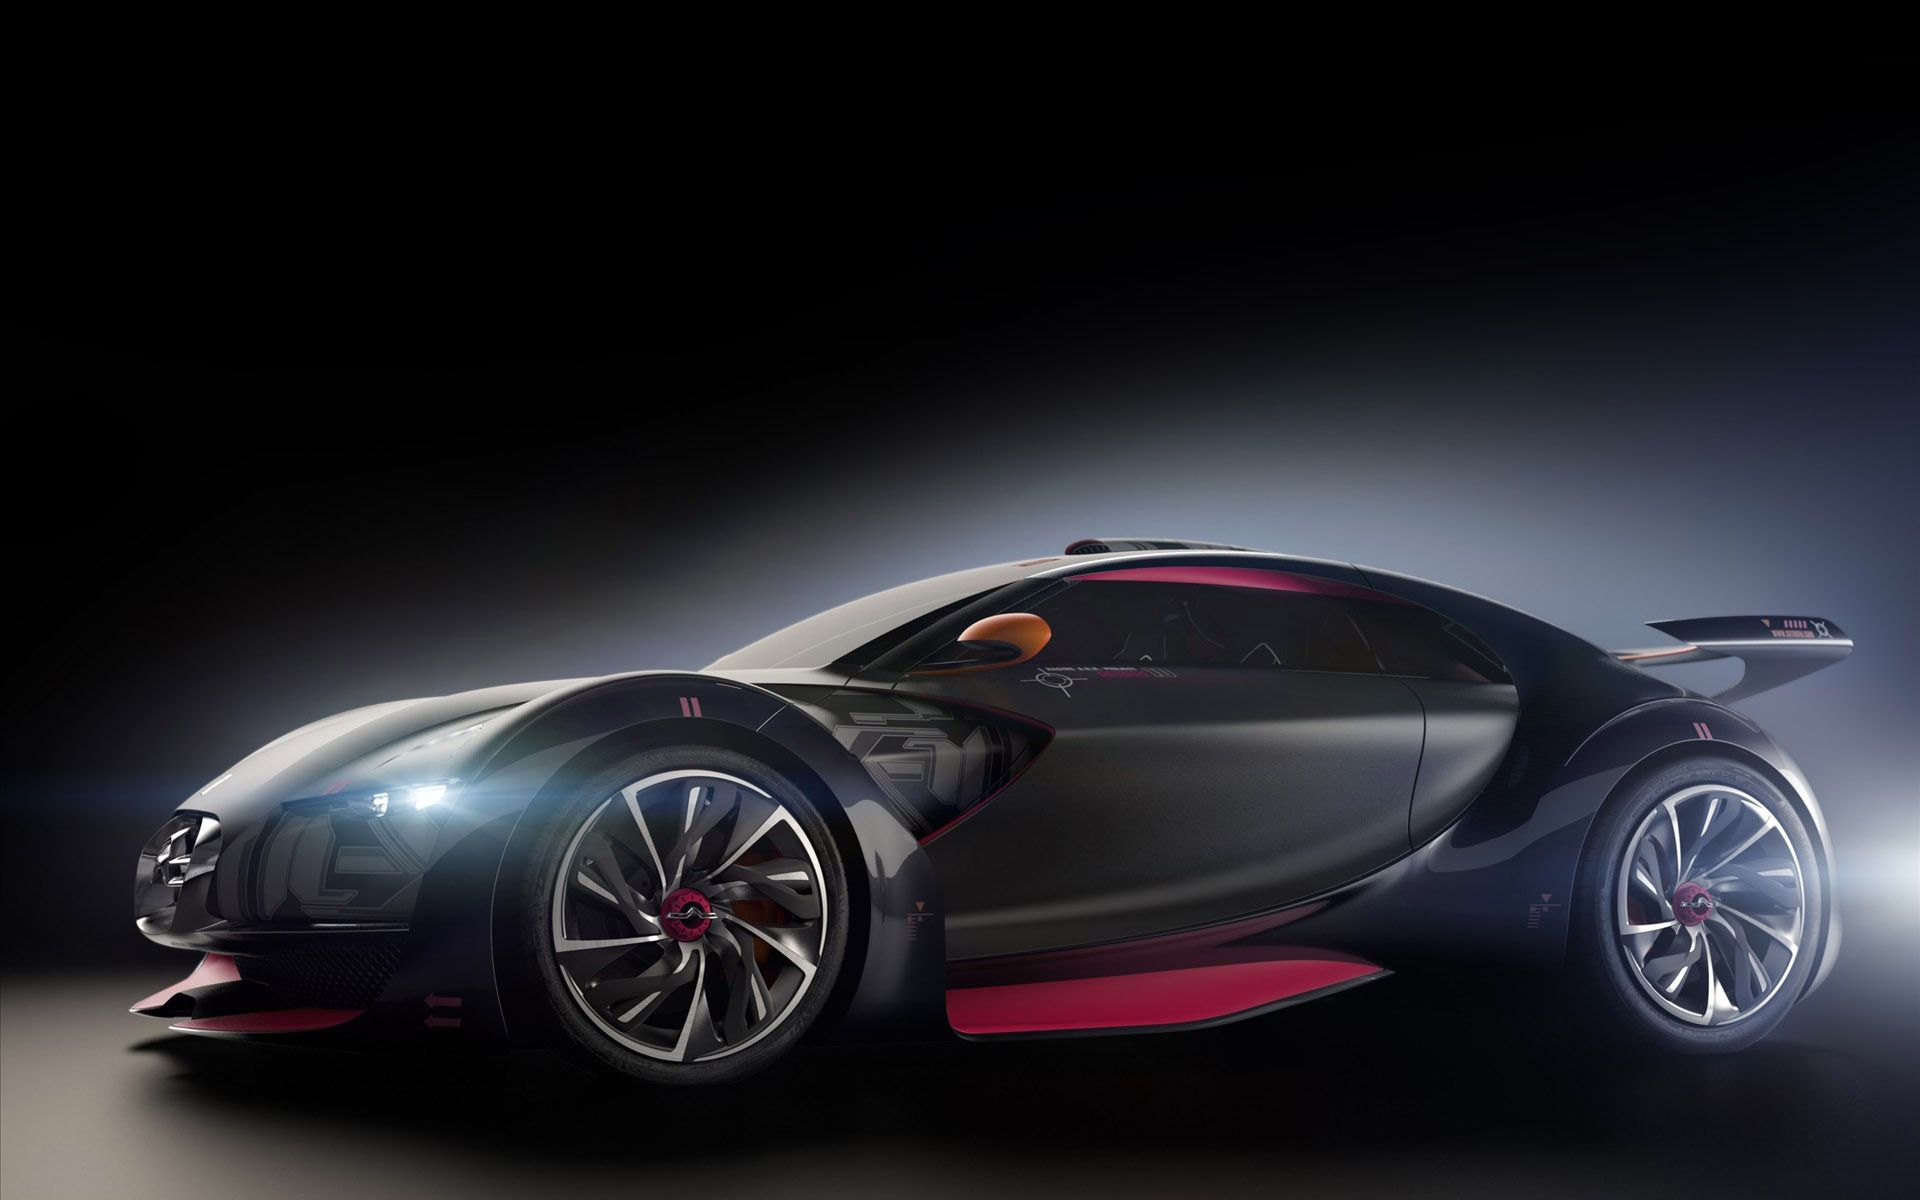 concept car hd wallpaper - photo #18